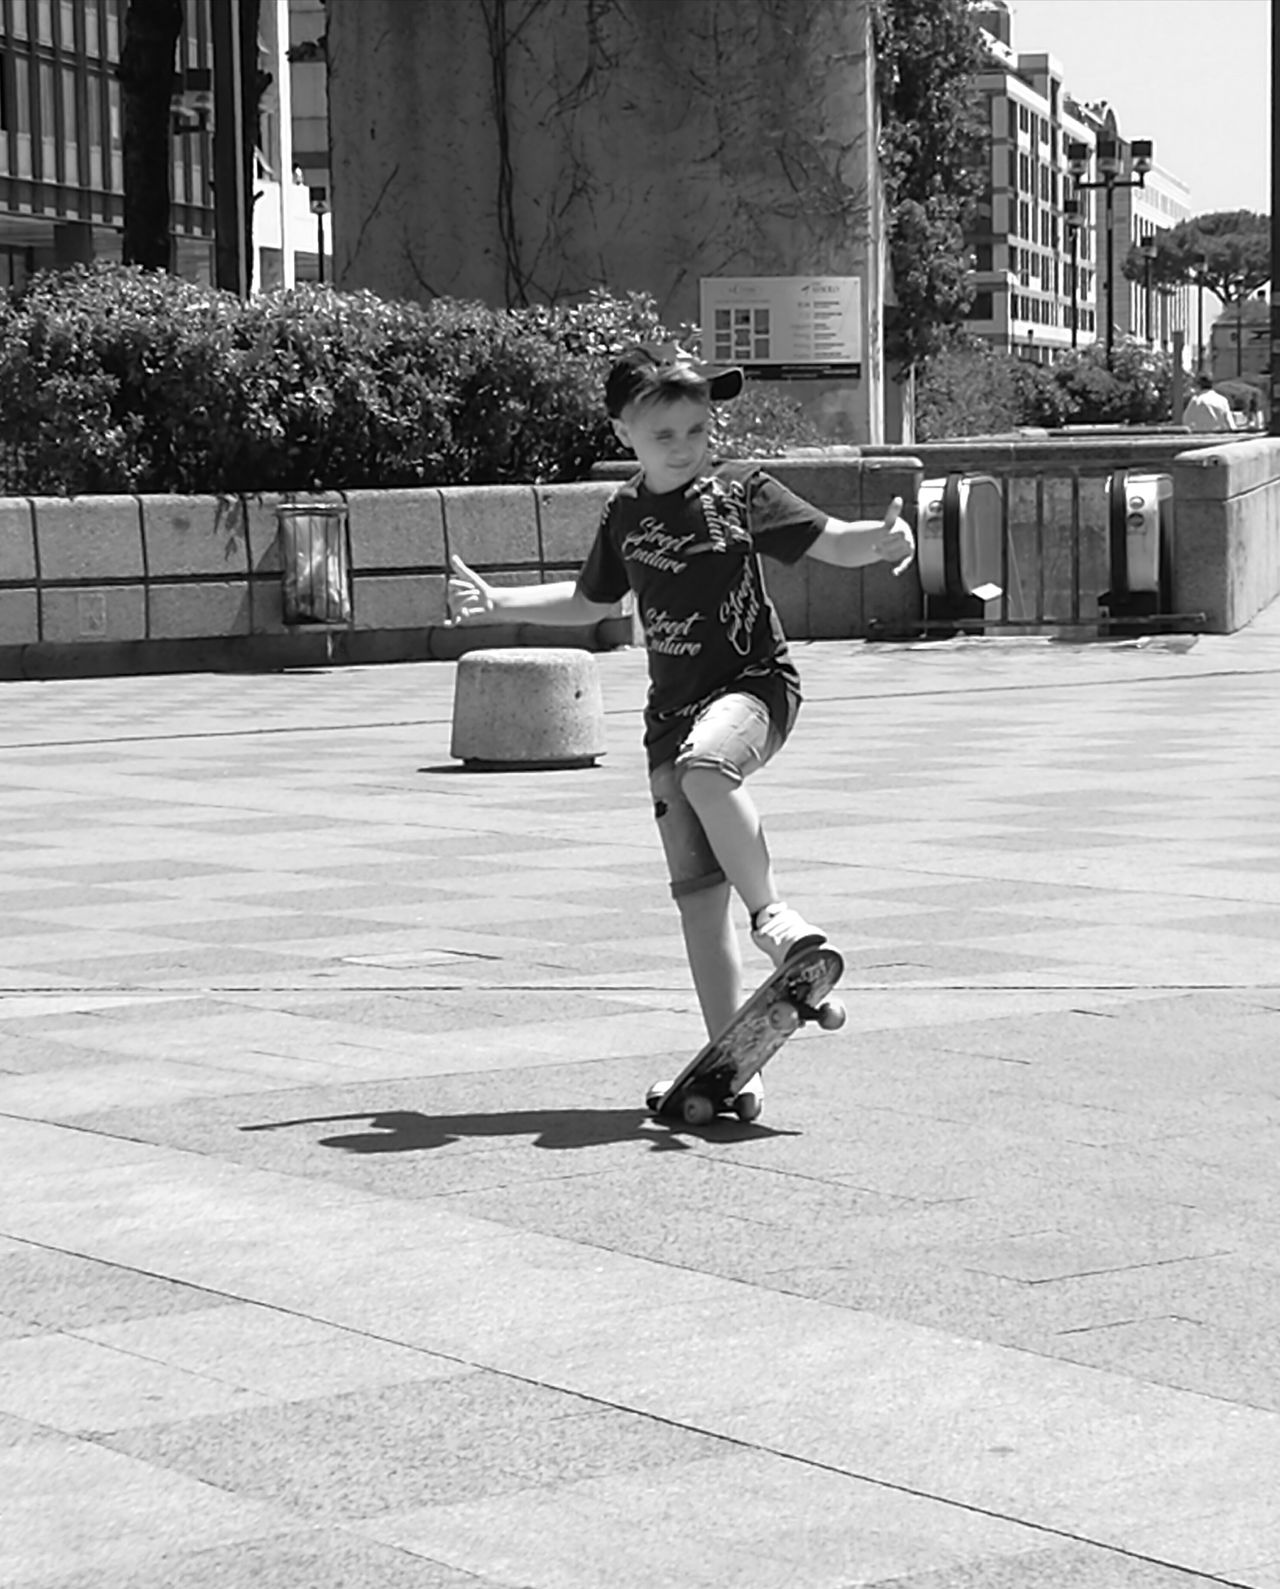 I'm so cool Childhood Full Length Playing Children Only The Street Photographer - 2017 EyeEm Awards Blackandwhite Photography Streetphoto_bw Streetphotography Napoli Italy Blackandwhitephotography NoEditNoFilter Capture The Moment Capturing Movement Capturing Freedom